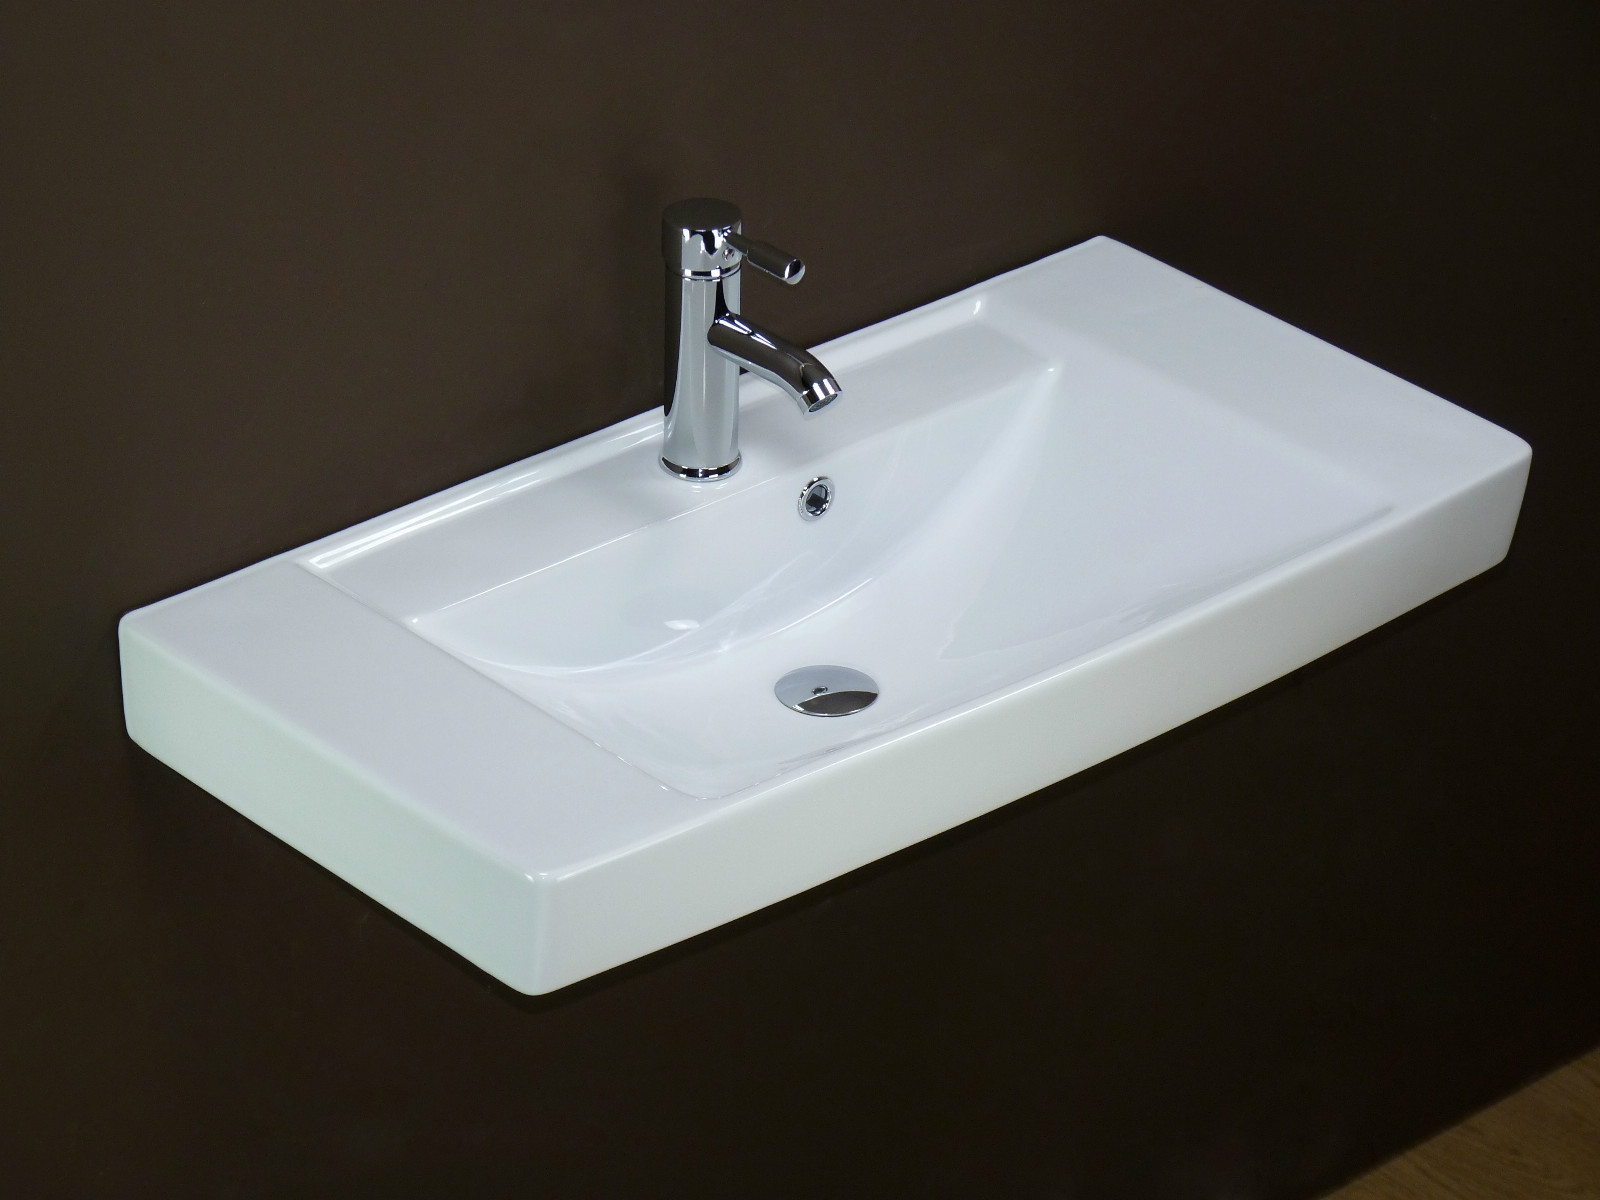 Ideas, elkay 3 compartment sink faucet elkay 3 compartment sink faucet bathroom elkay 3 compartment sink with dayton sinks and beautiful 1600 x 1200  .